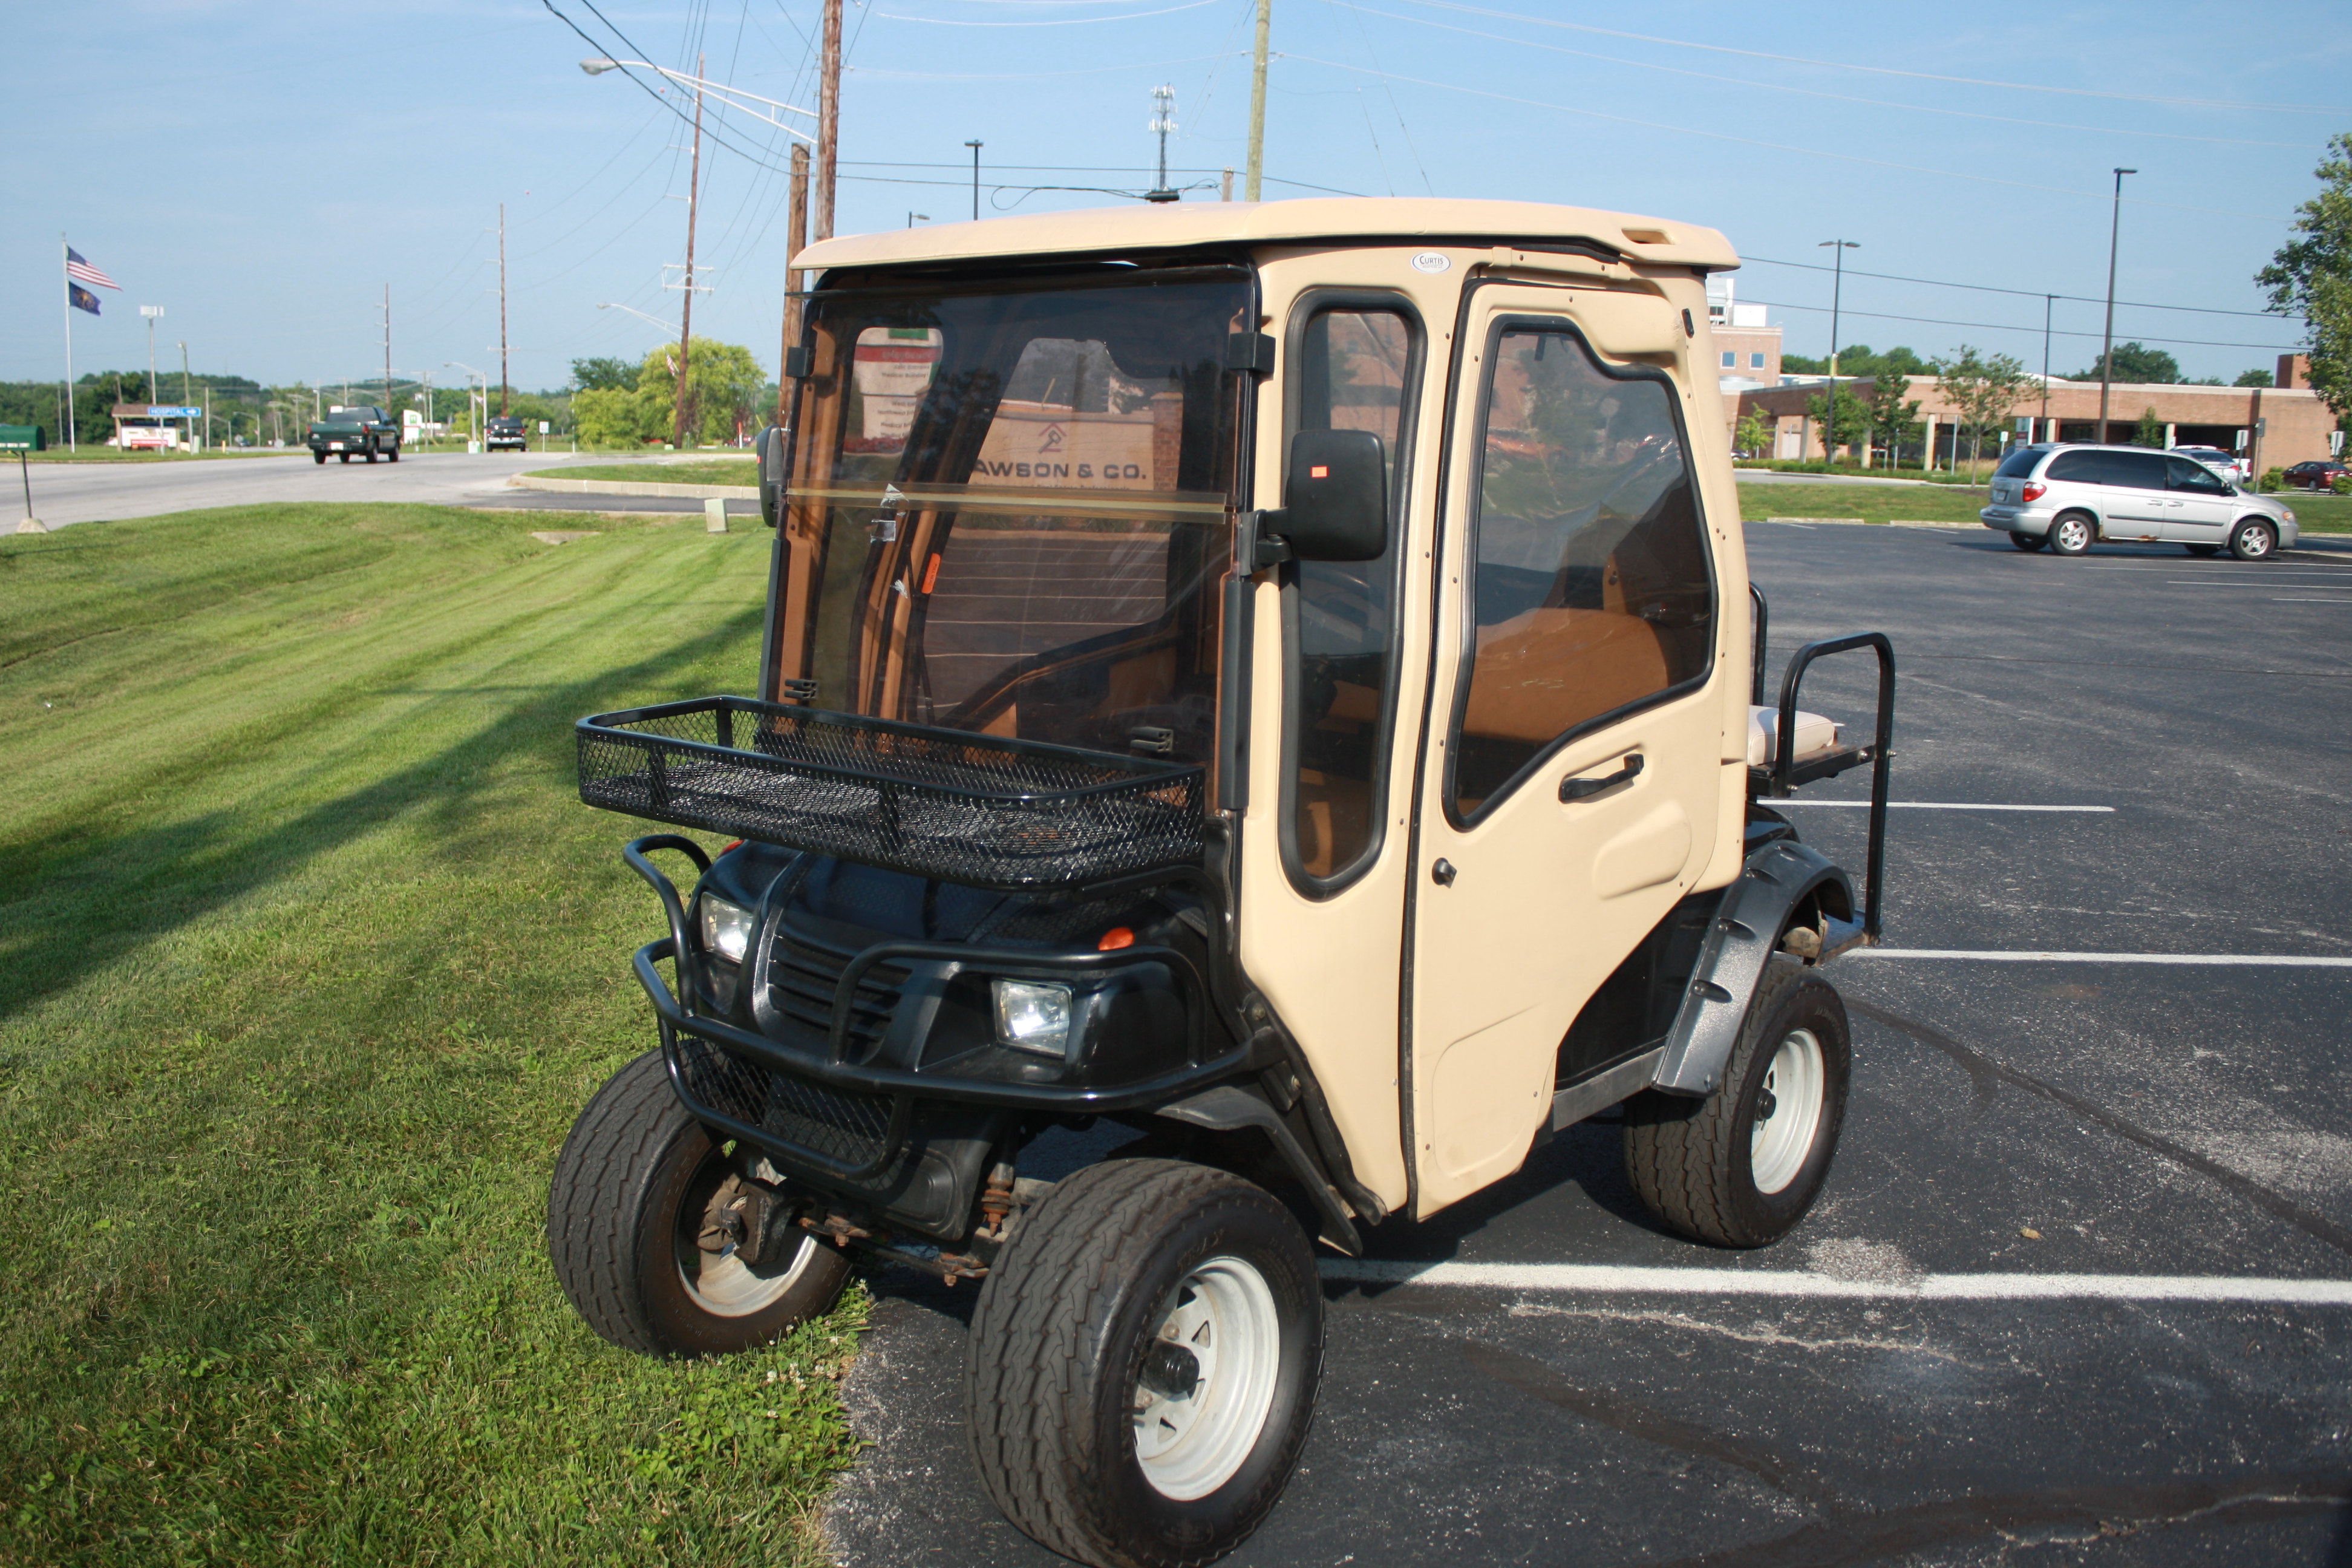 ROLLING R GOLF CARS GOLF CART – FURNITURE & MUCH MORE!